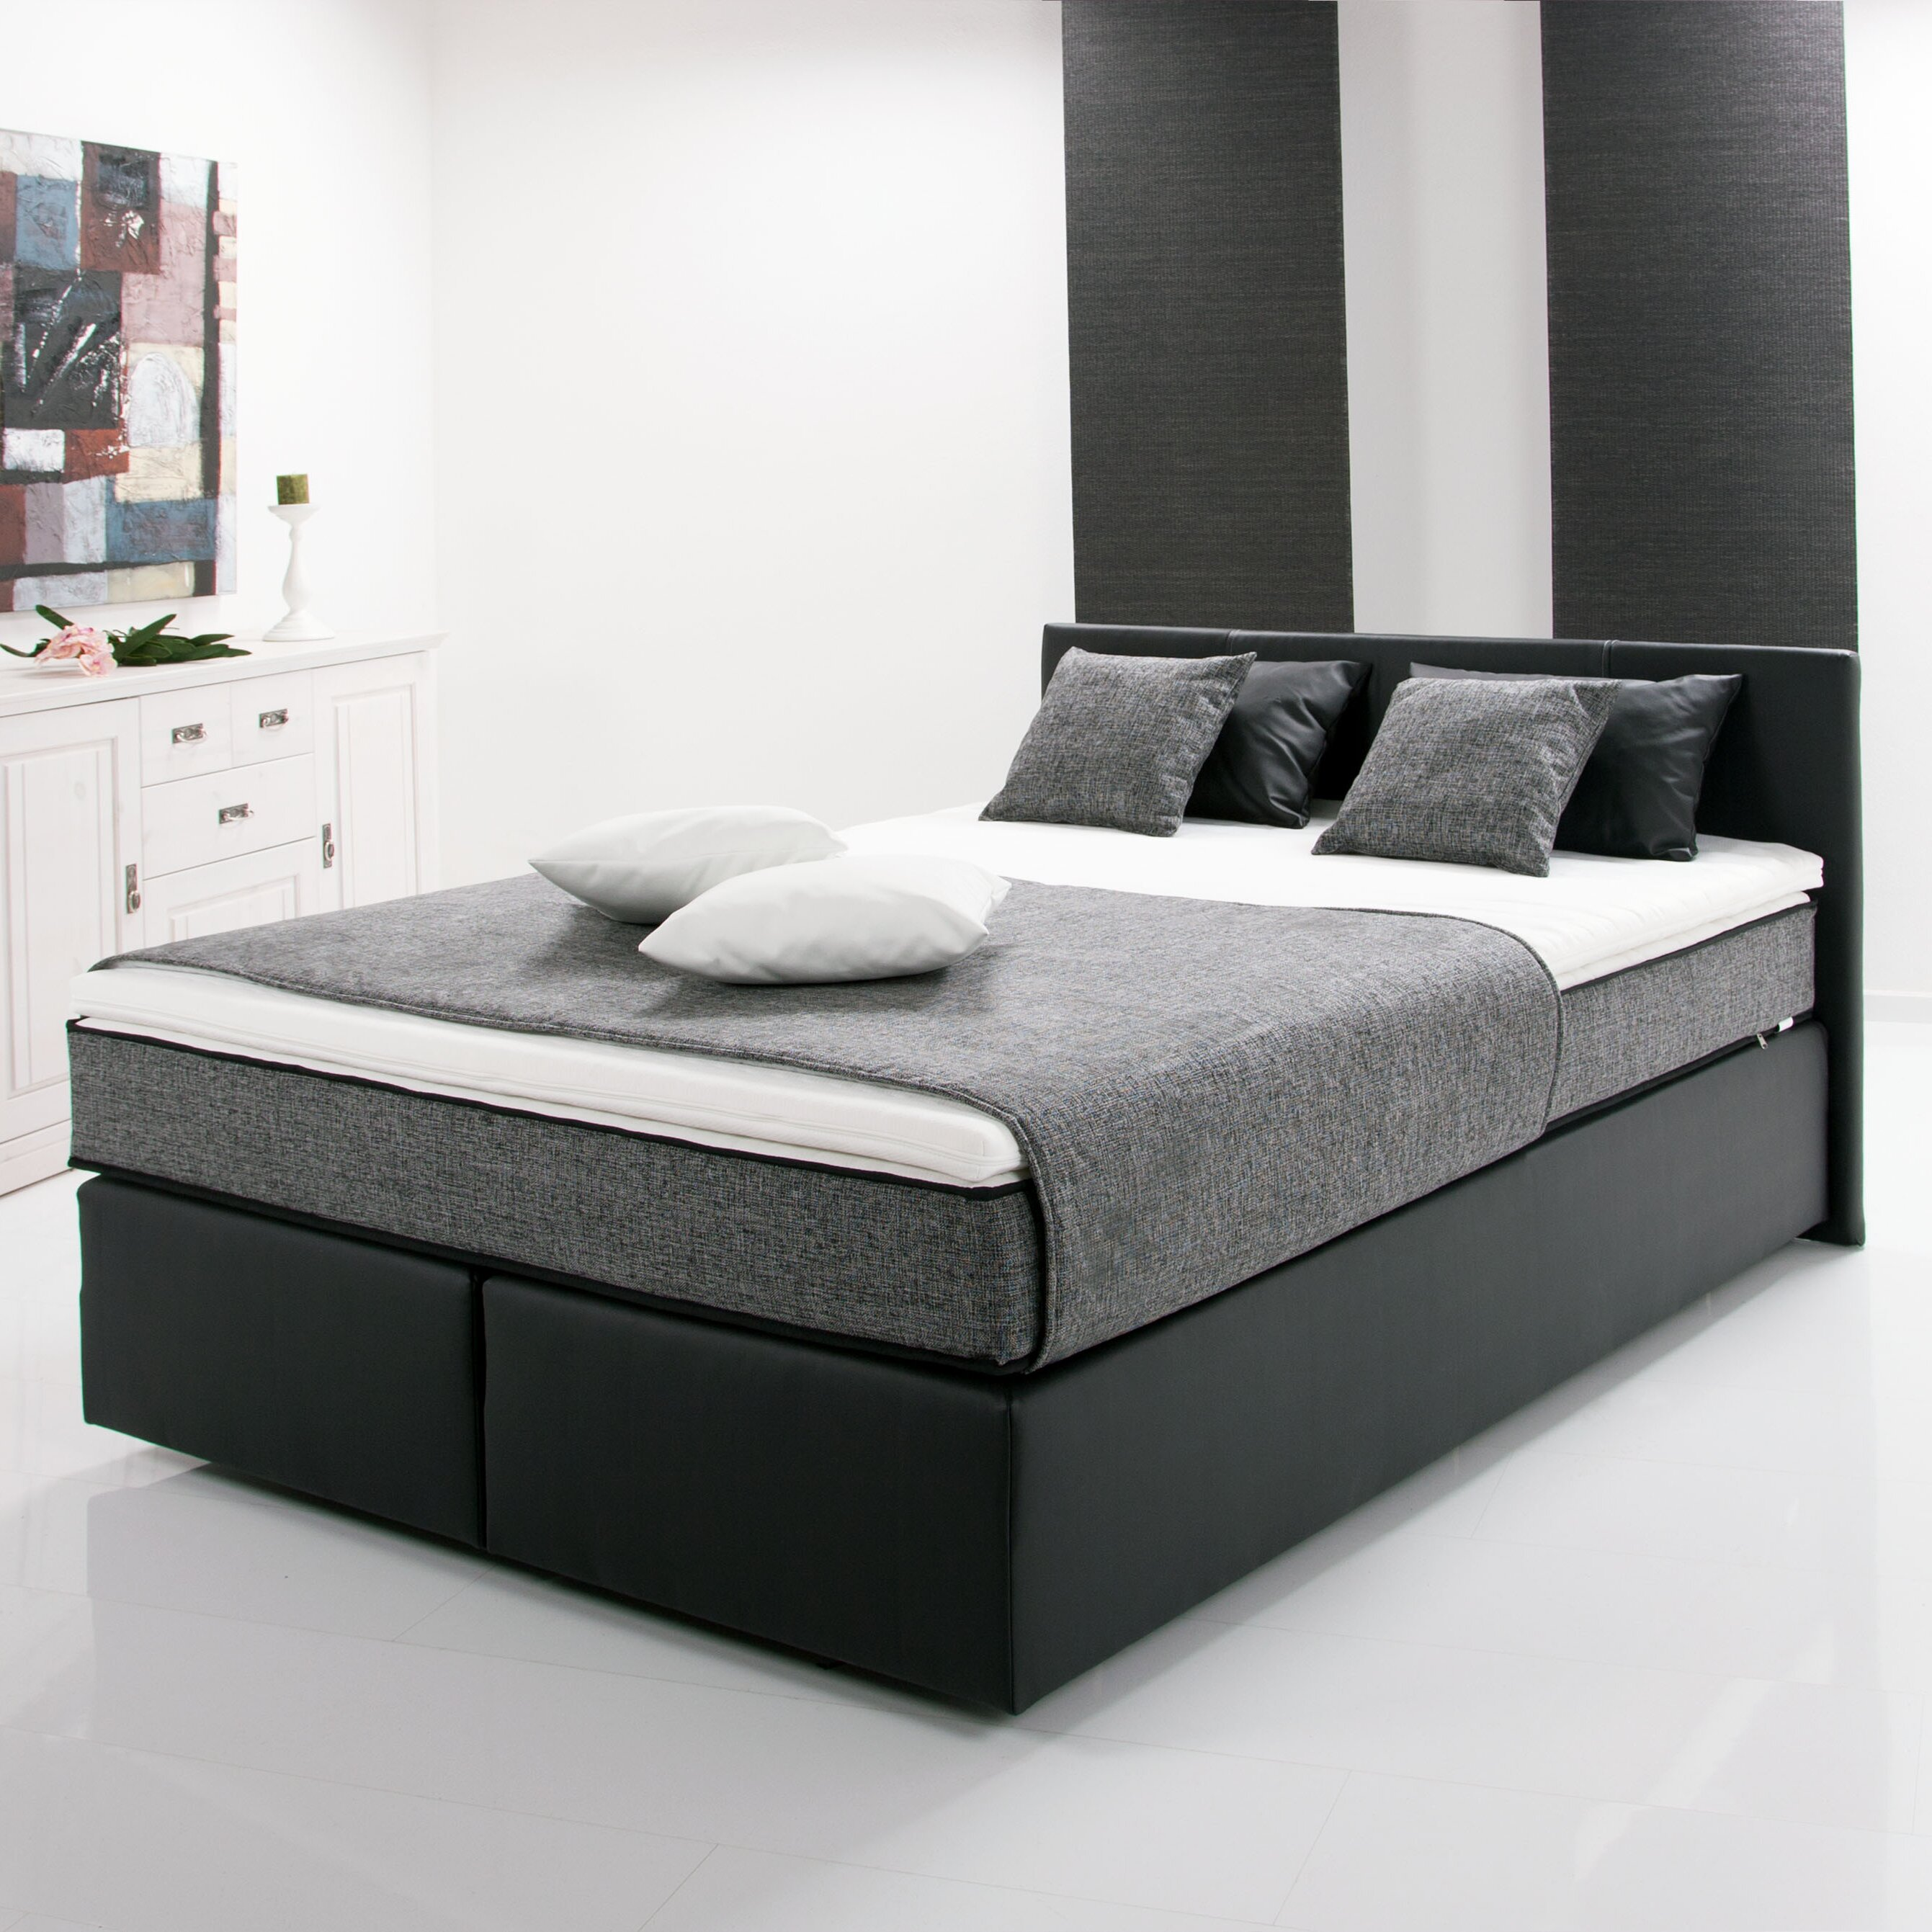 breckle boxspringbett pluto mit topper bewertungen. Black Bedroom Furniture Sets. Home Design Ideas